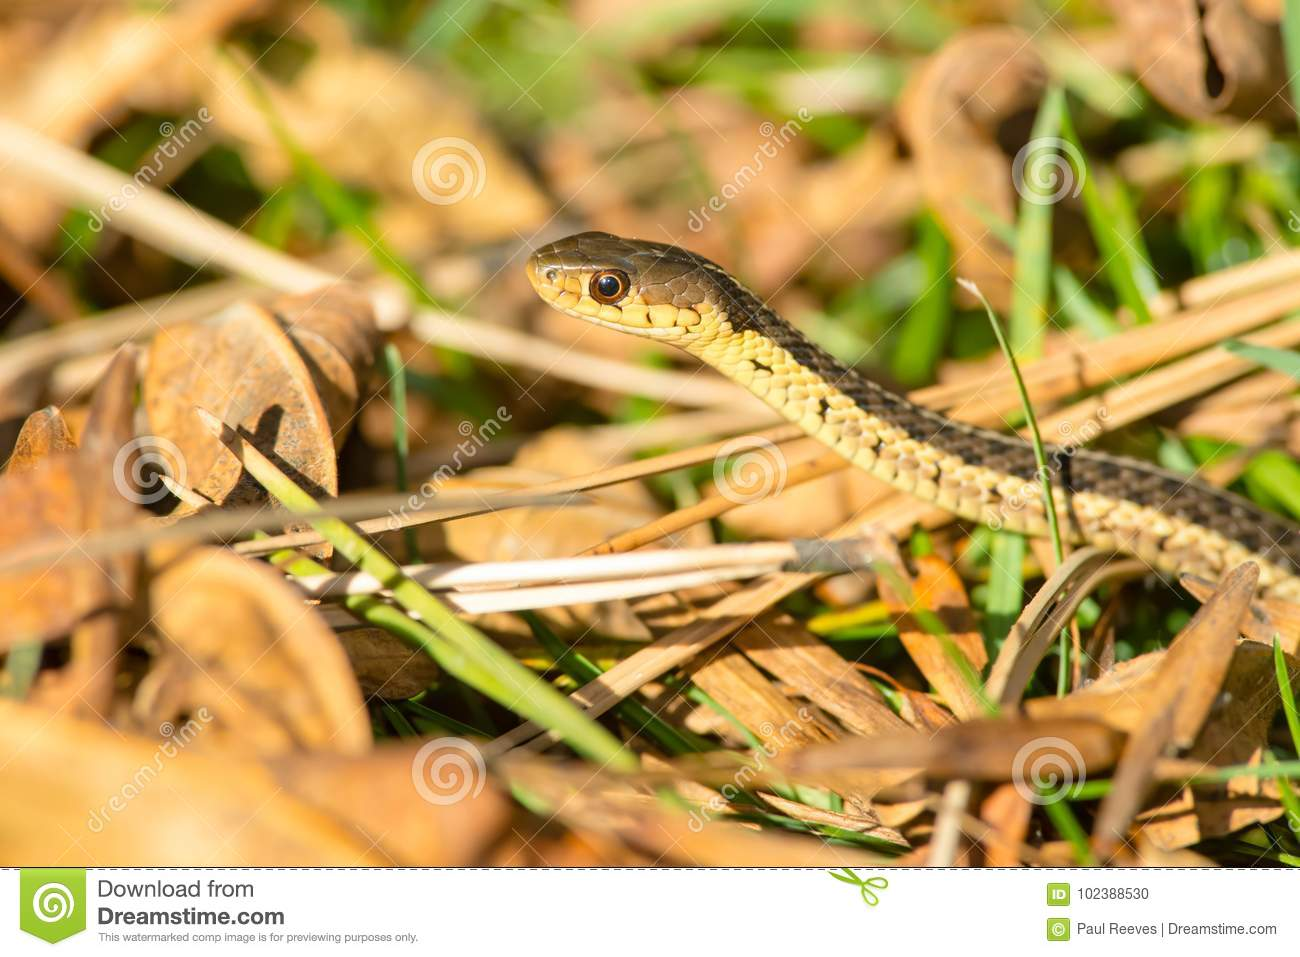 Download Common Garter Snake - Thamnophis Sirtalis Stock Photo - Image of urban, outdoors: 102388530